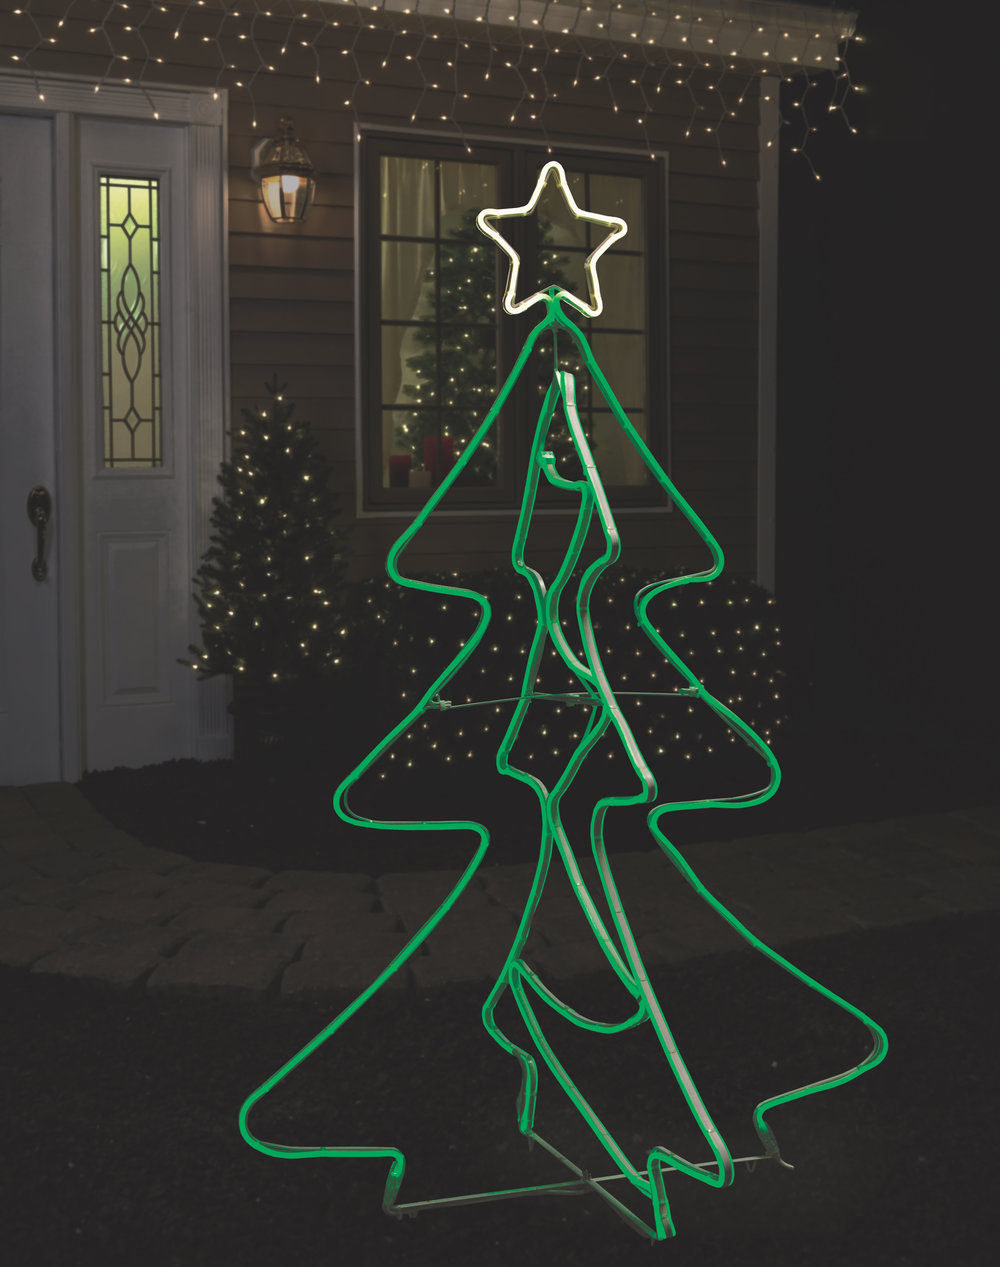 Xmas lighting decorations Star Home Led Incandescent Prelit Trees Where To Buy Support Online Store Ge Holiday Lighting Led Ge Holiday Lighting